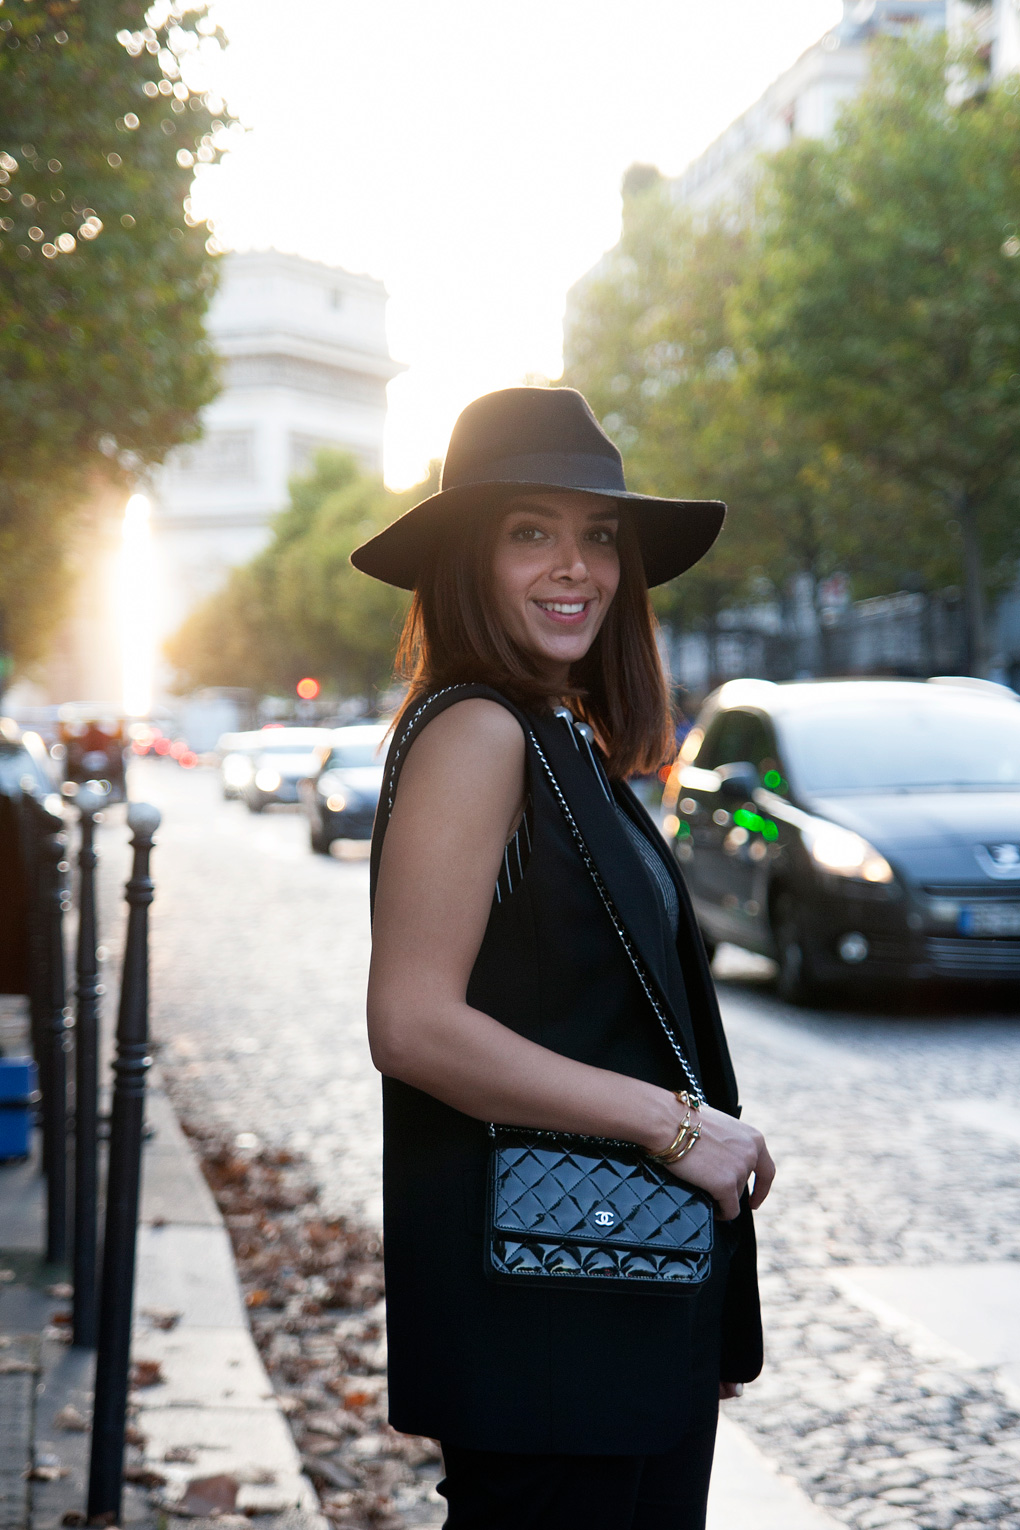 Lyla_Loves_Fashion_Alexander_wang_Paris_Fashion_Week_Street_Style_1830